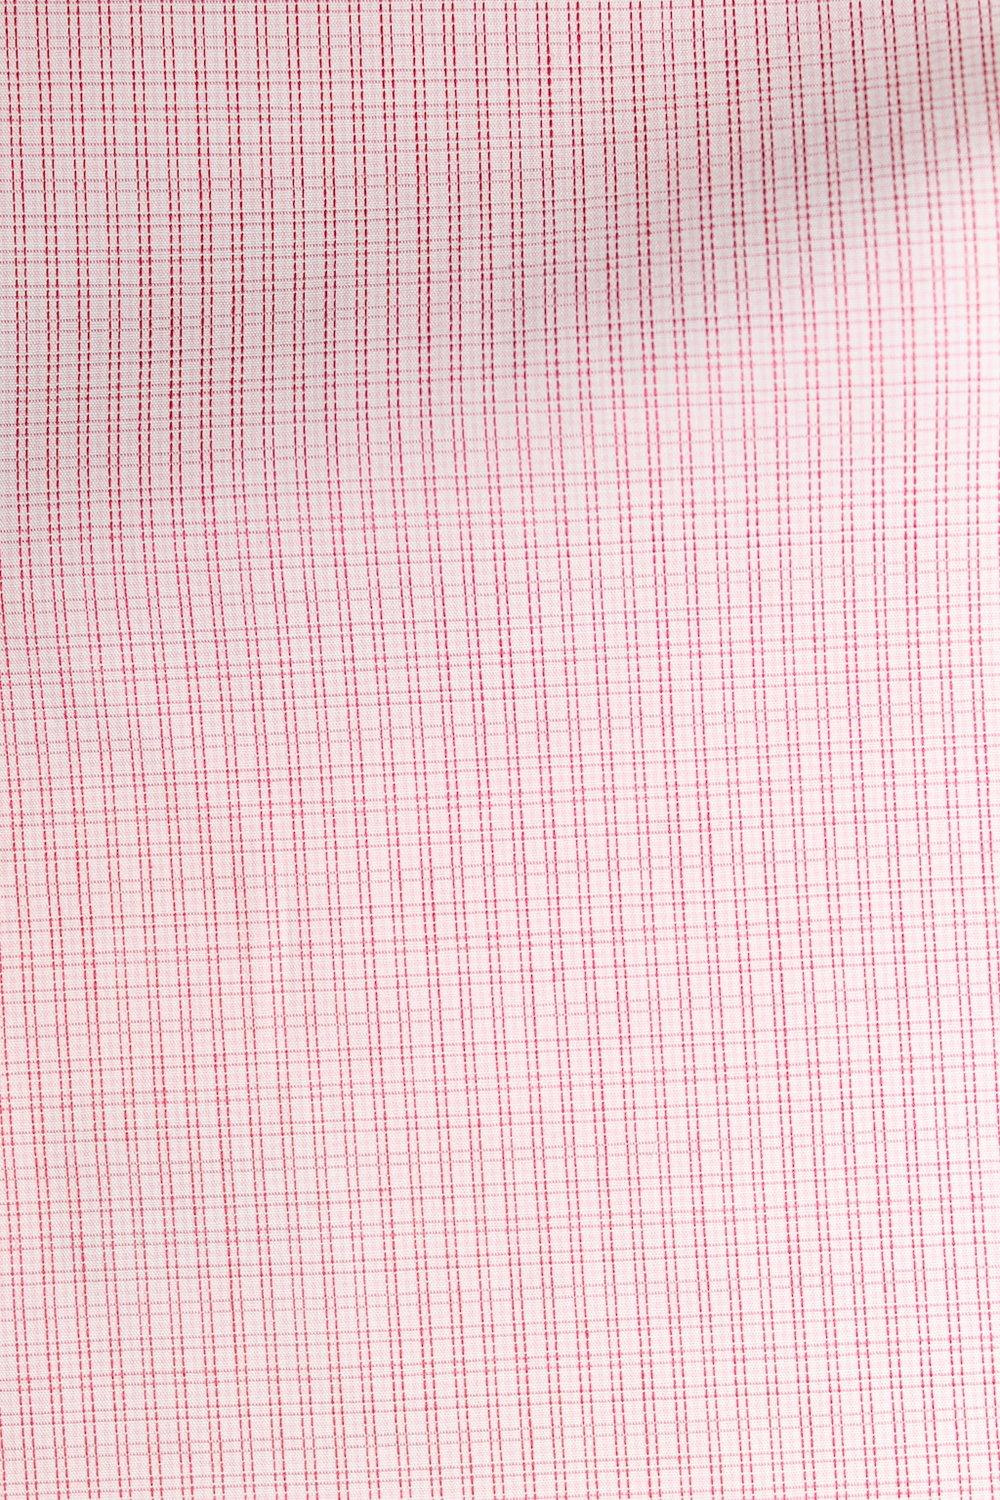 6624 Red Checker Grid.JPG